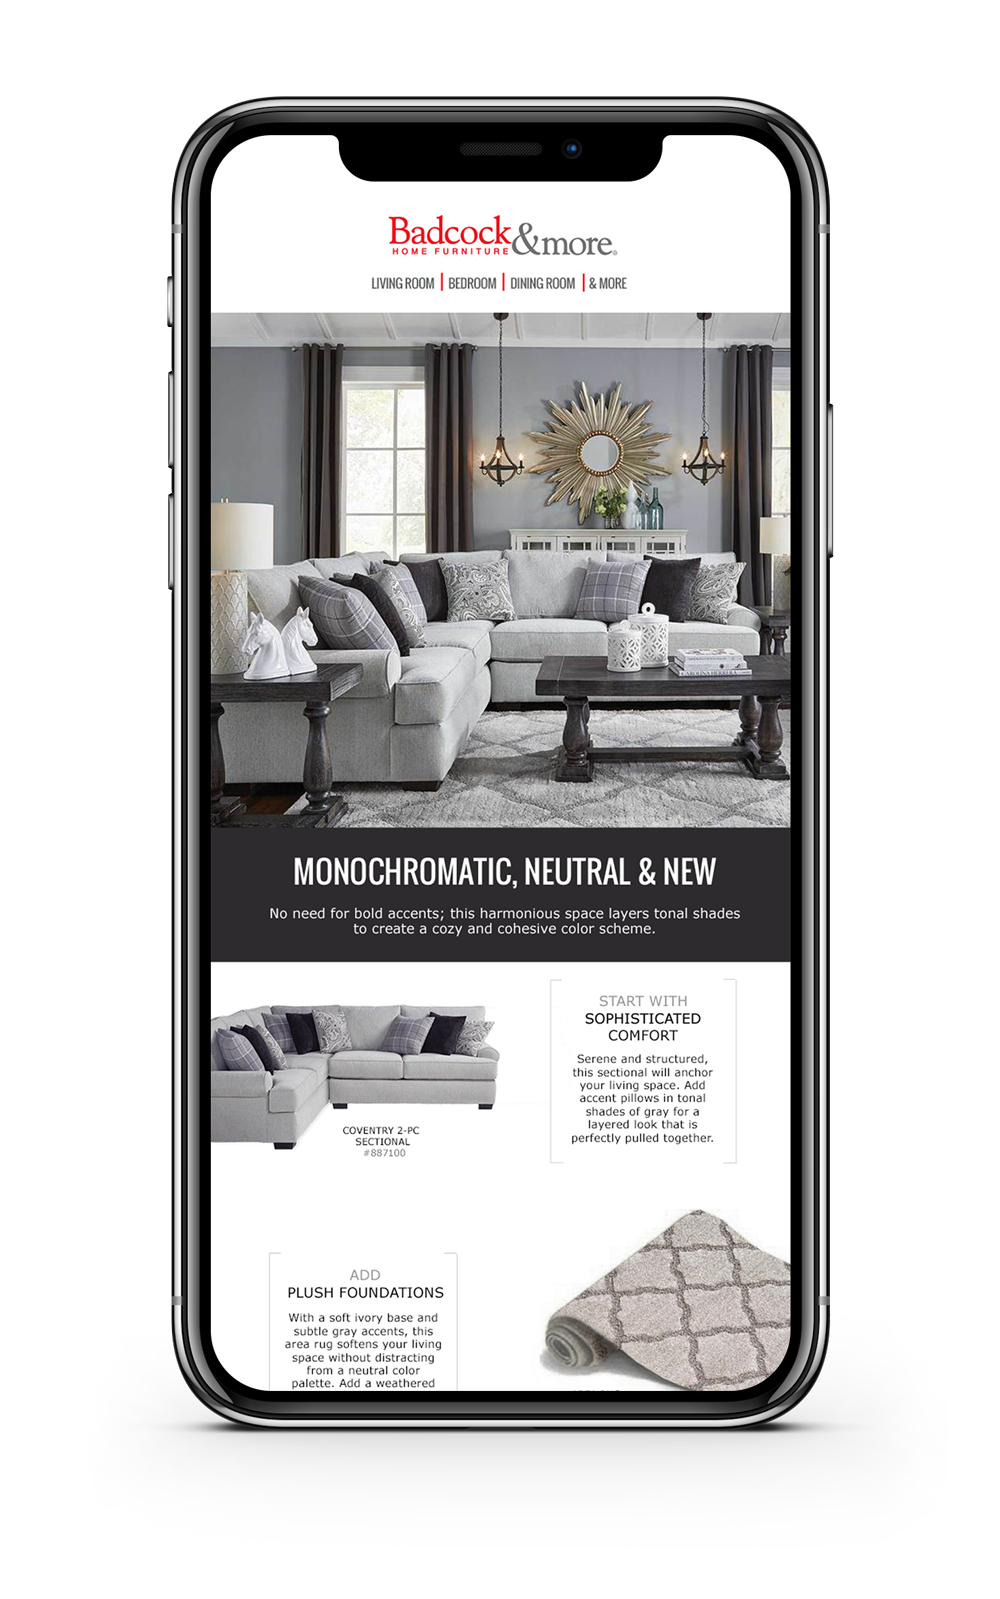 BADCOCK FURNITURE & MORE EMAIL CAMPAIGN :: LAYOUT + DEVELOPMENT